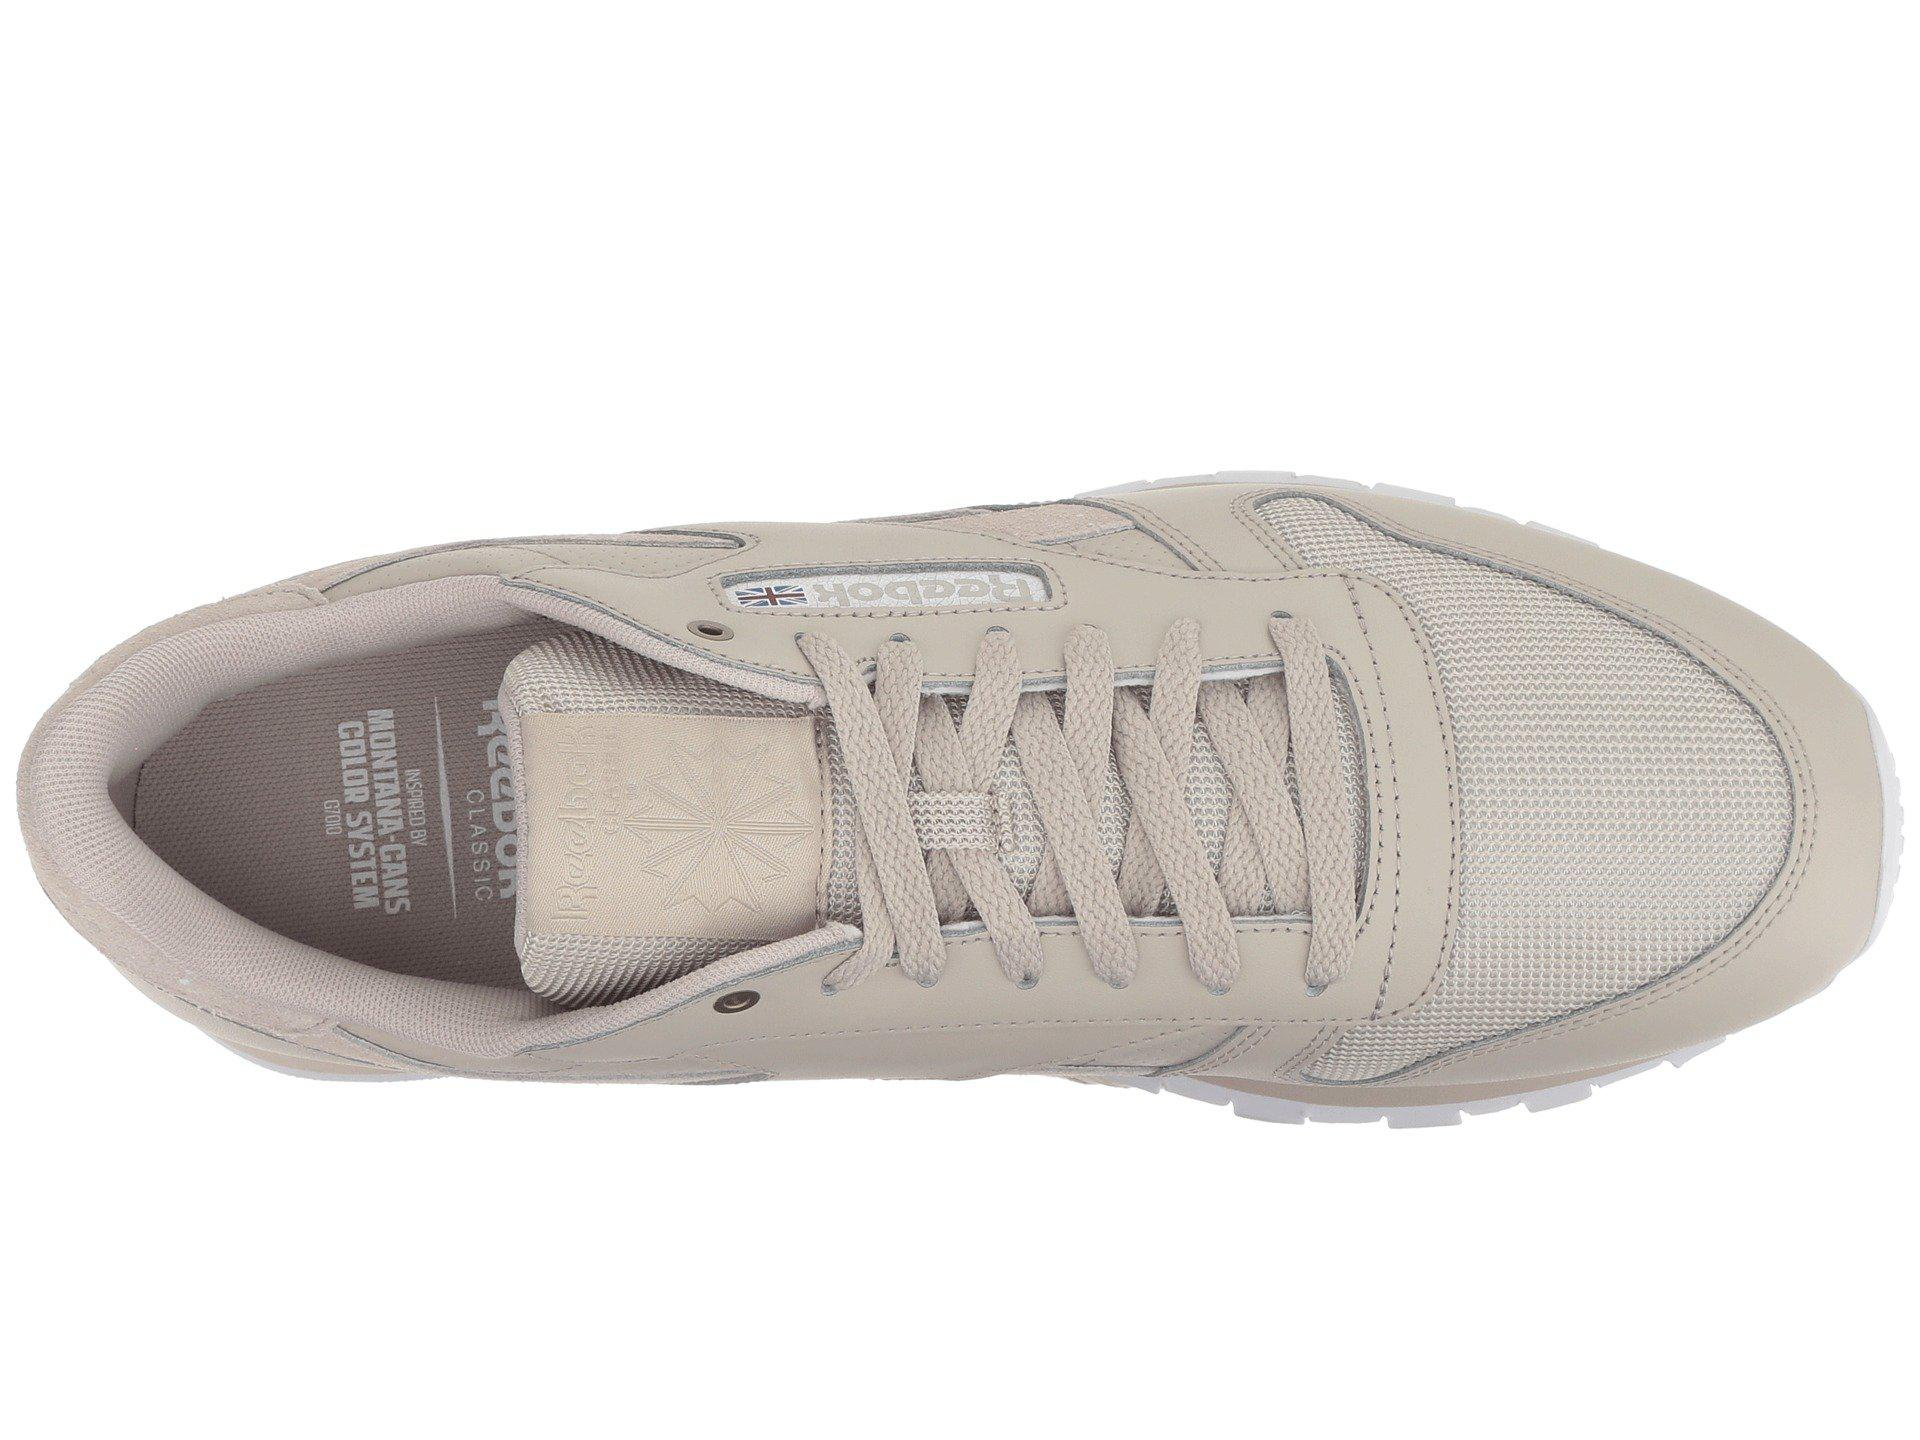 923fd95951f0 Reebok - White Classic Leather Mu for Men - Lyst. View fullscreen